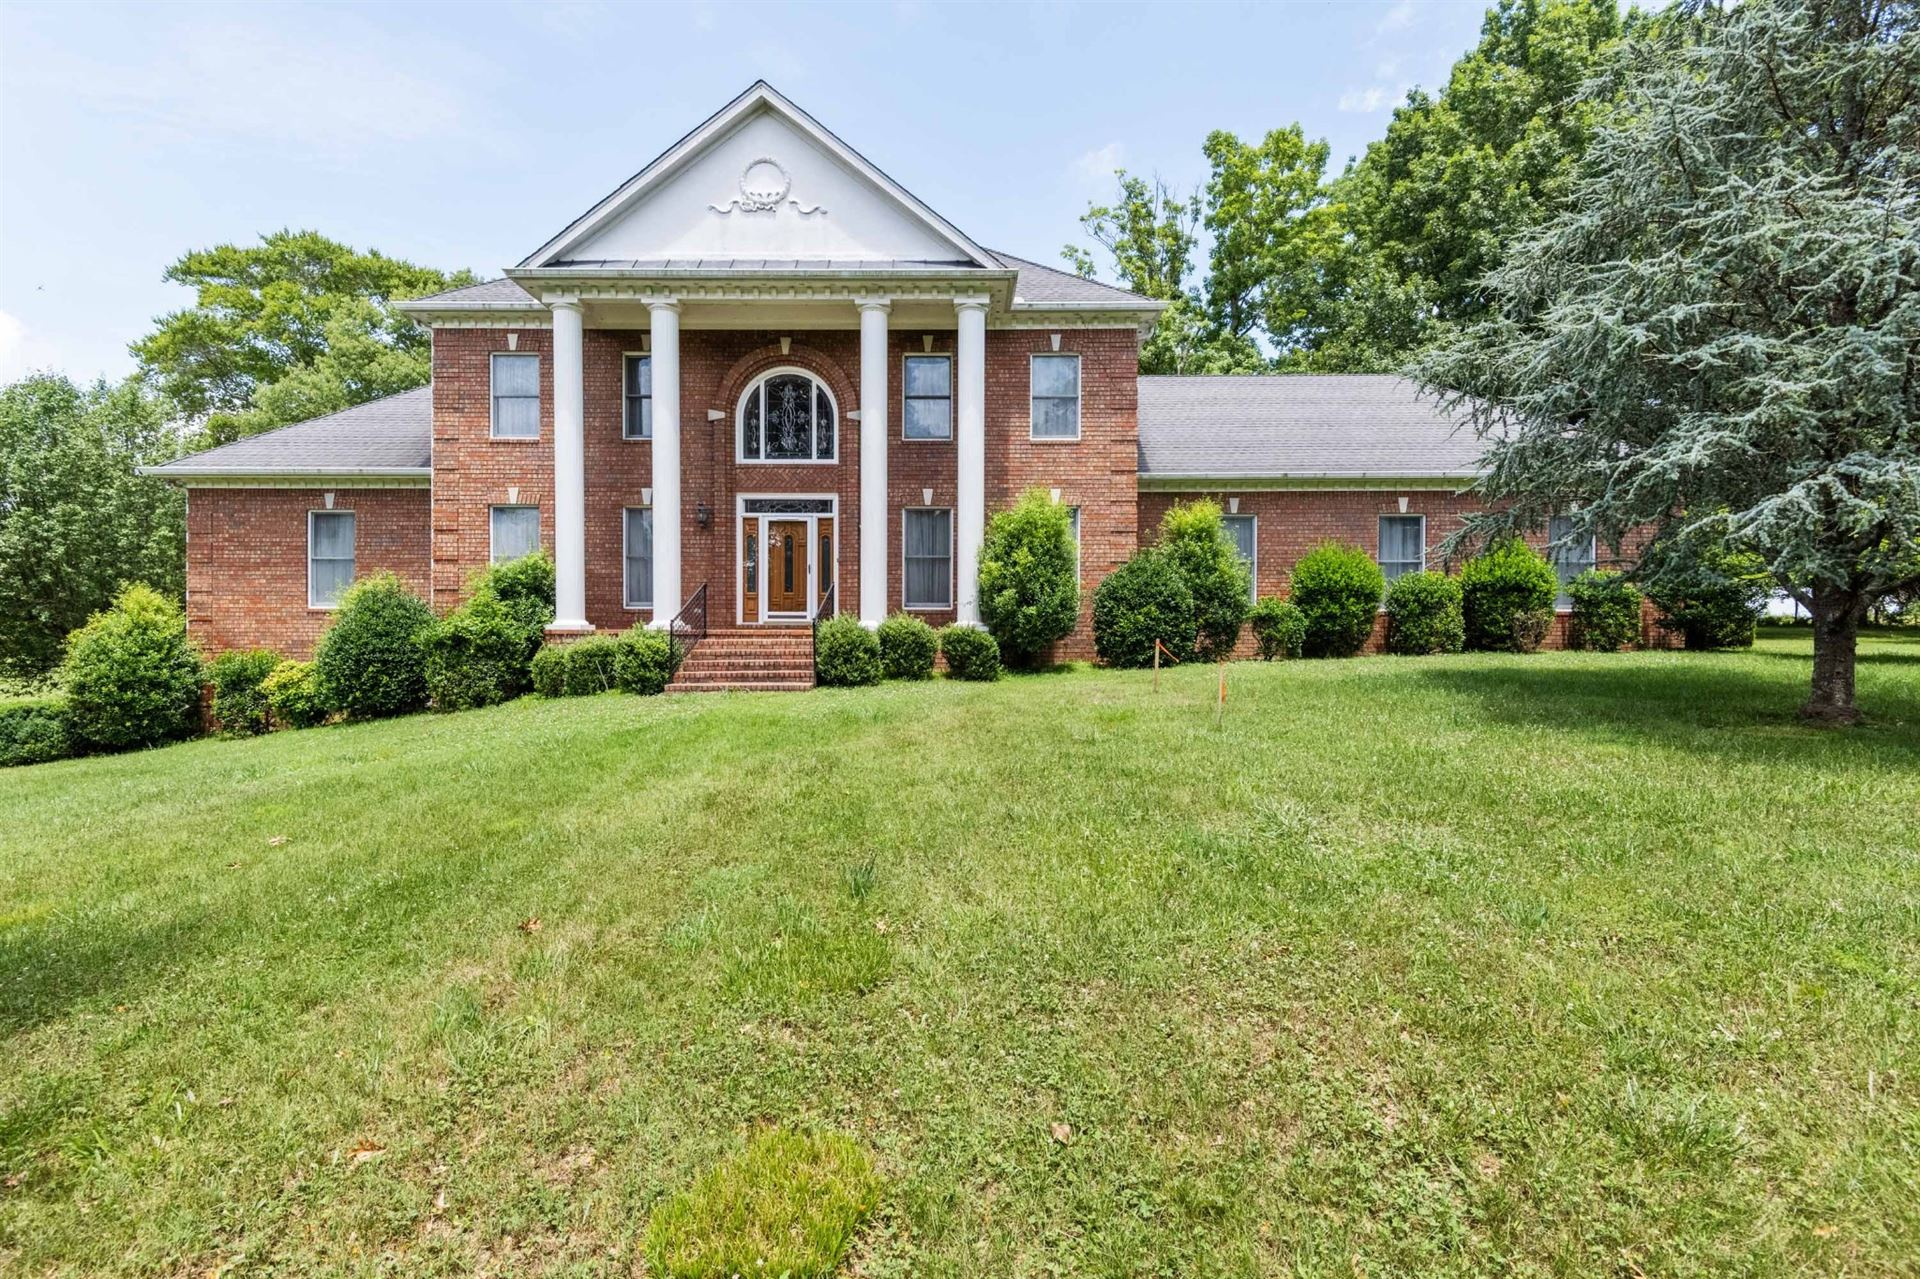 3244 Saundersville Ferry Rd, Mount Juliet, TN 37122 - MLS#: 2186188